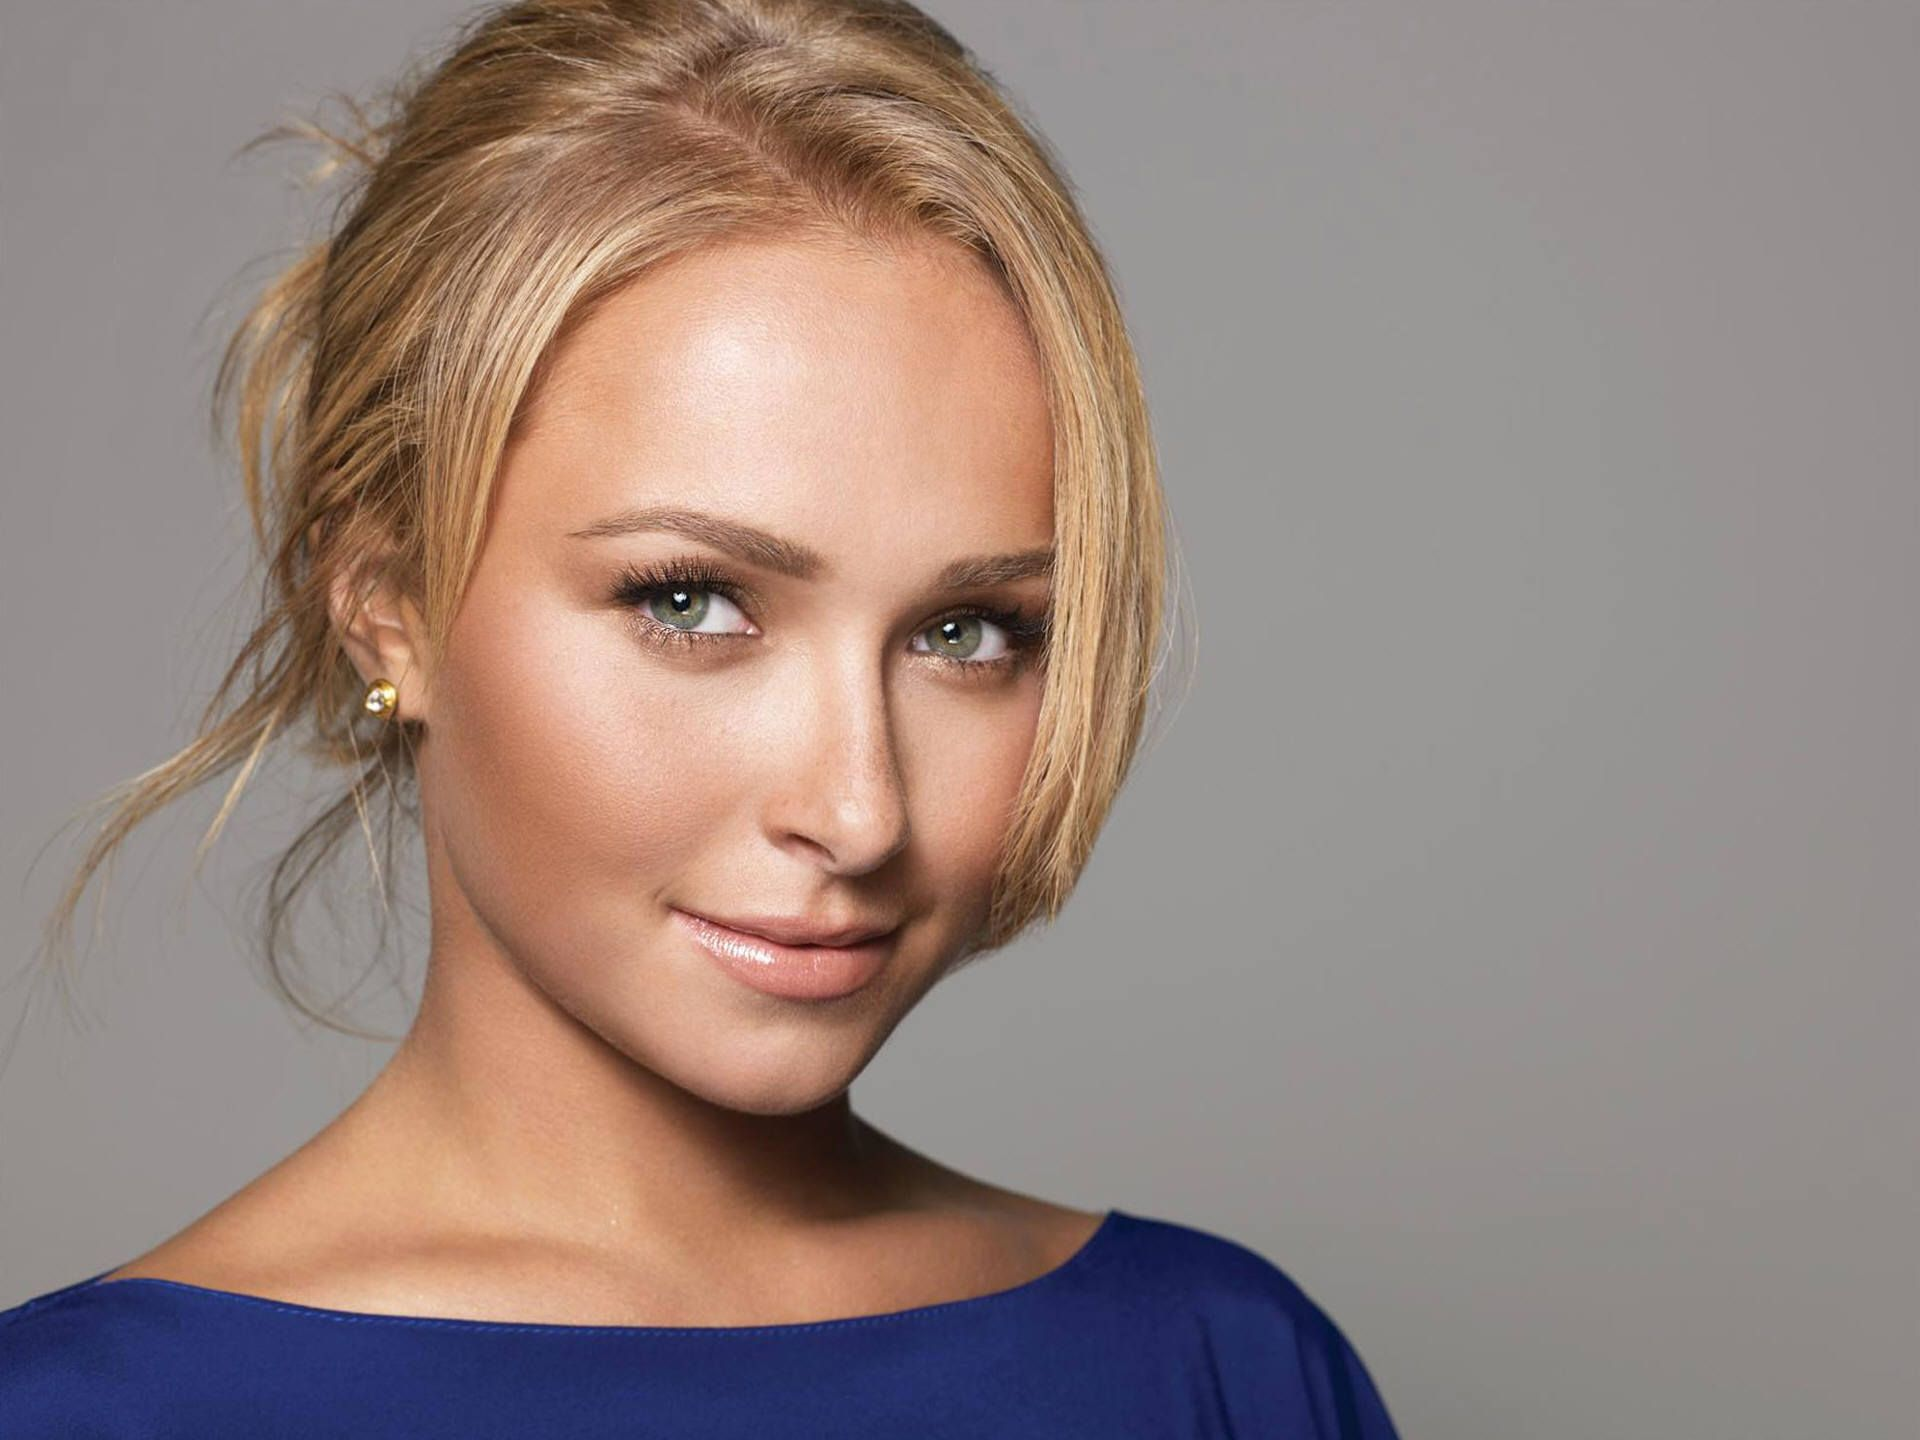 Hd Wallpaper And Background Photos Of Hayden Pretty Wallpaper For Fans Of Hayden Panettiere Images 10280852